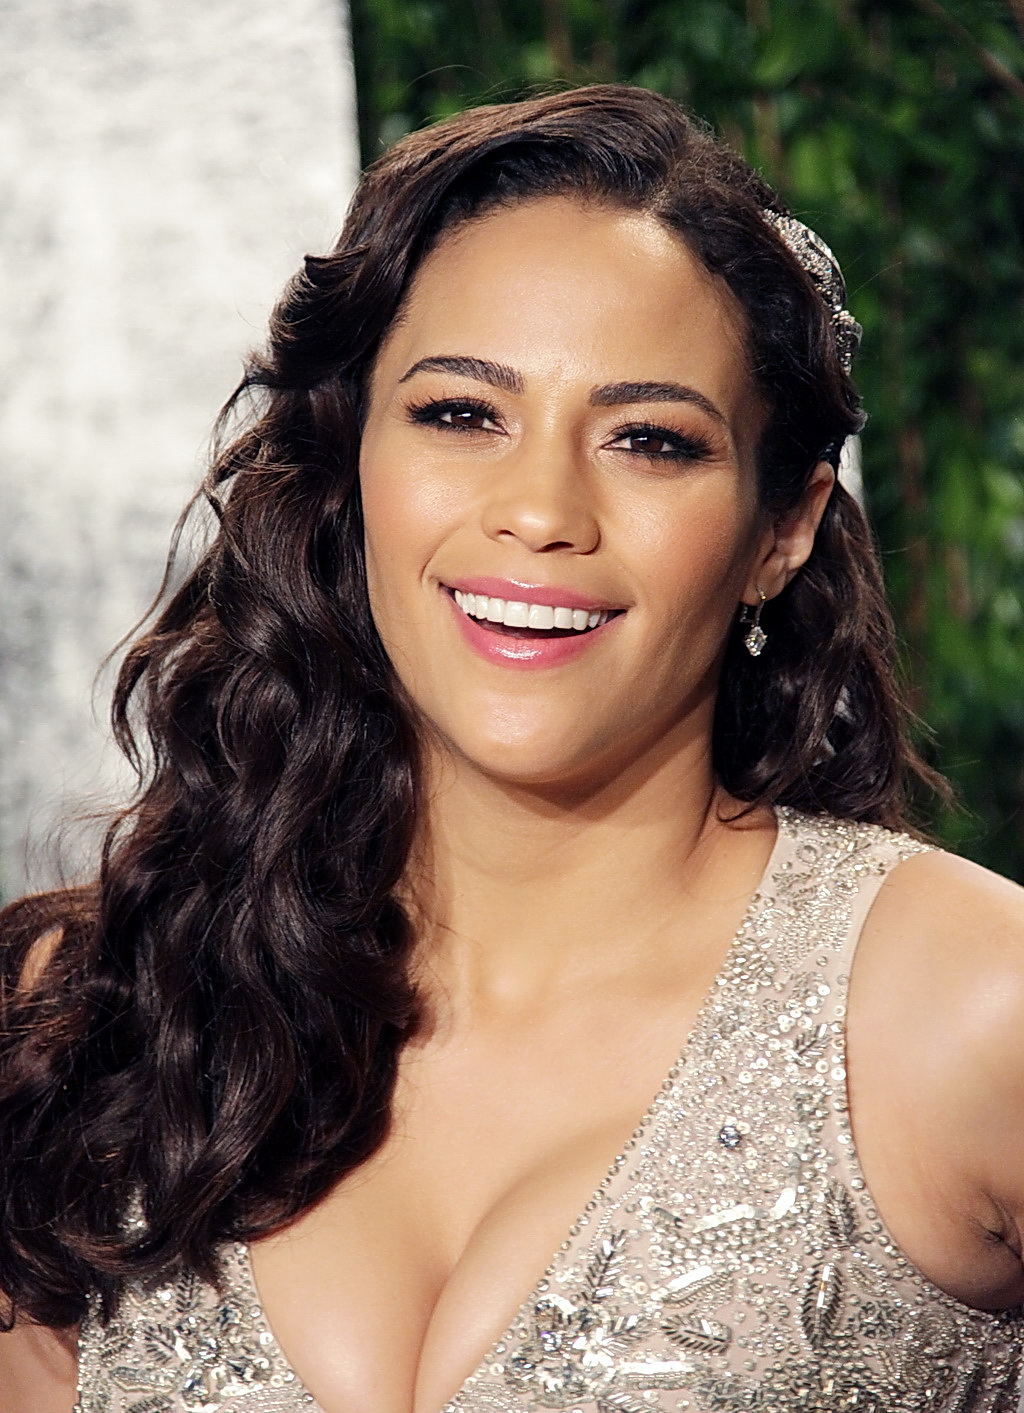 Paula Patton Busty And Leggy At 2012 Vanity Fair Oscar